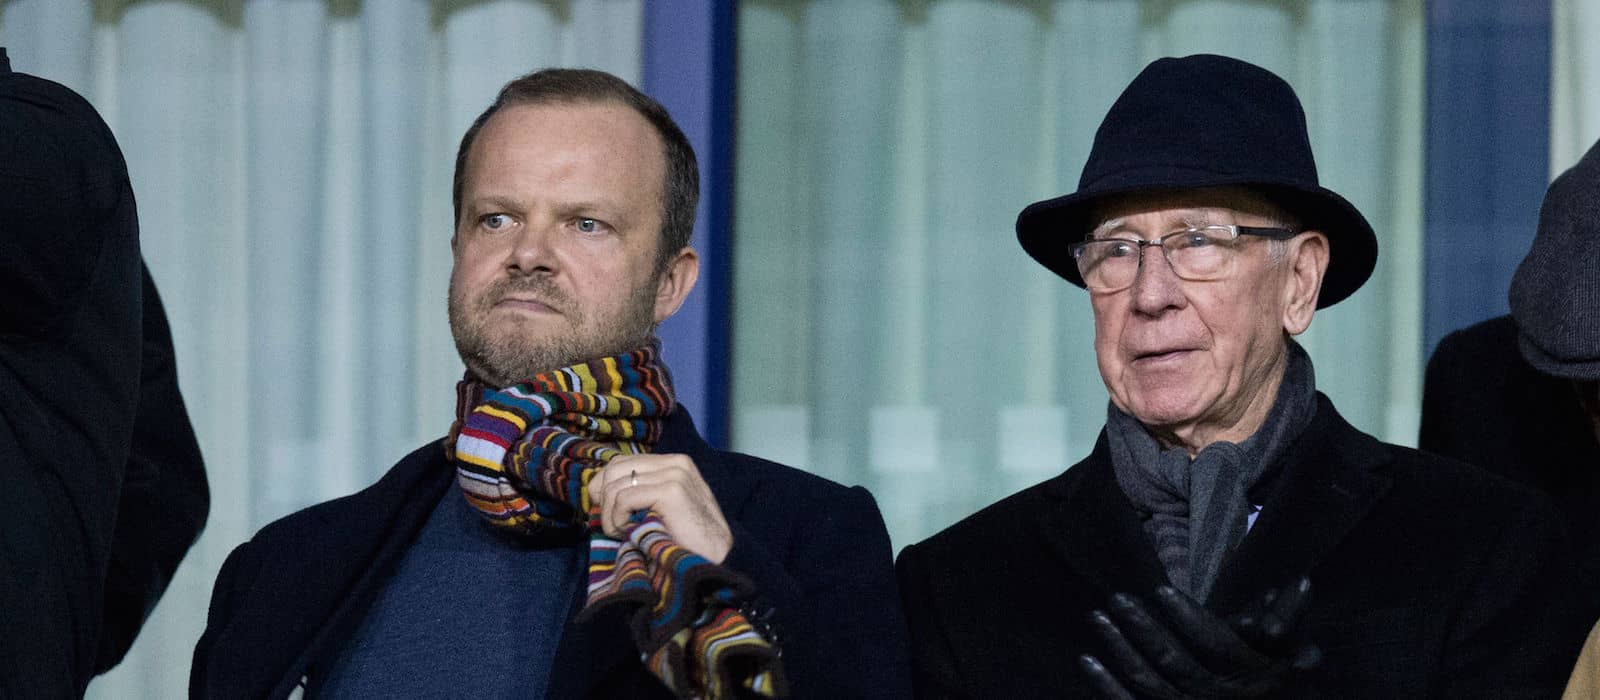 Ed Woodward hits back at claims that football comes second at Manchester United